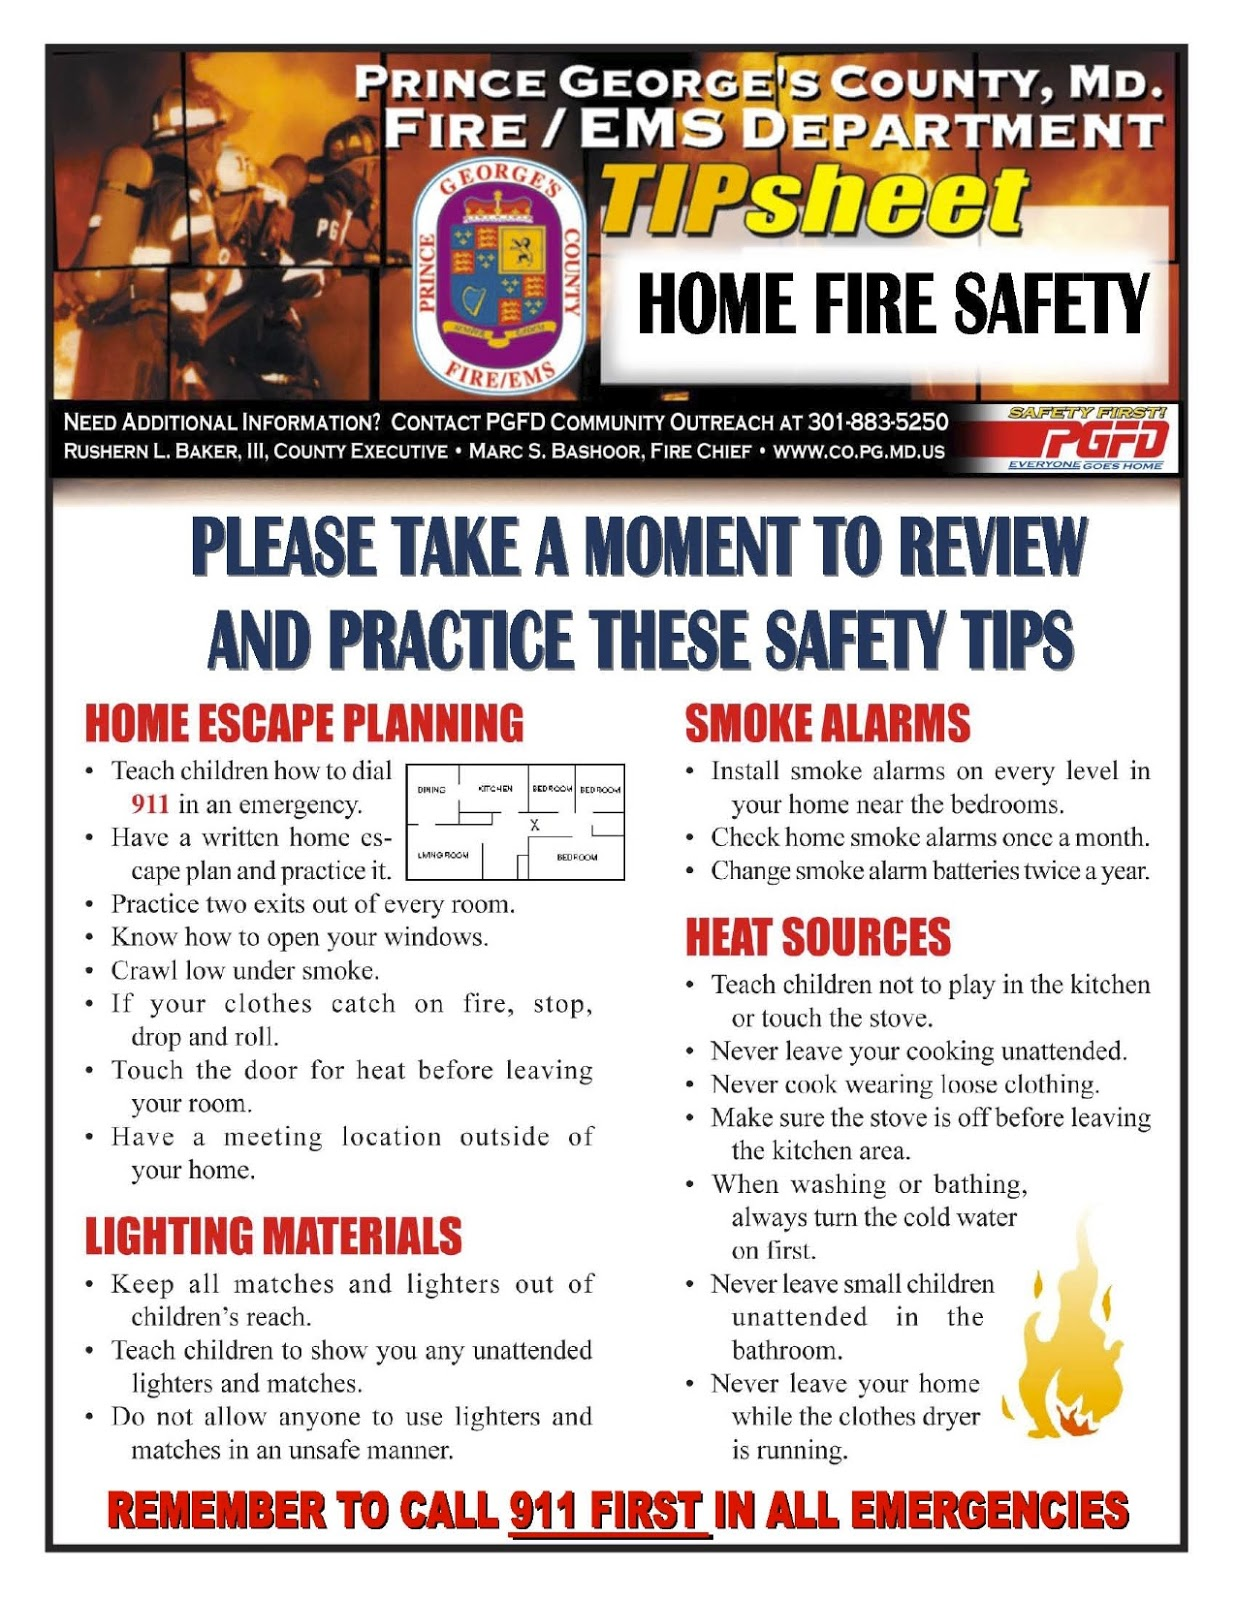 Fire Ems Department And Schools Partner For Fire Safety